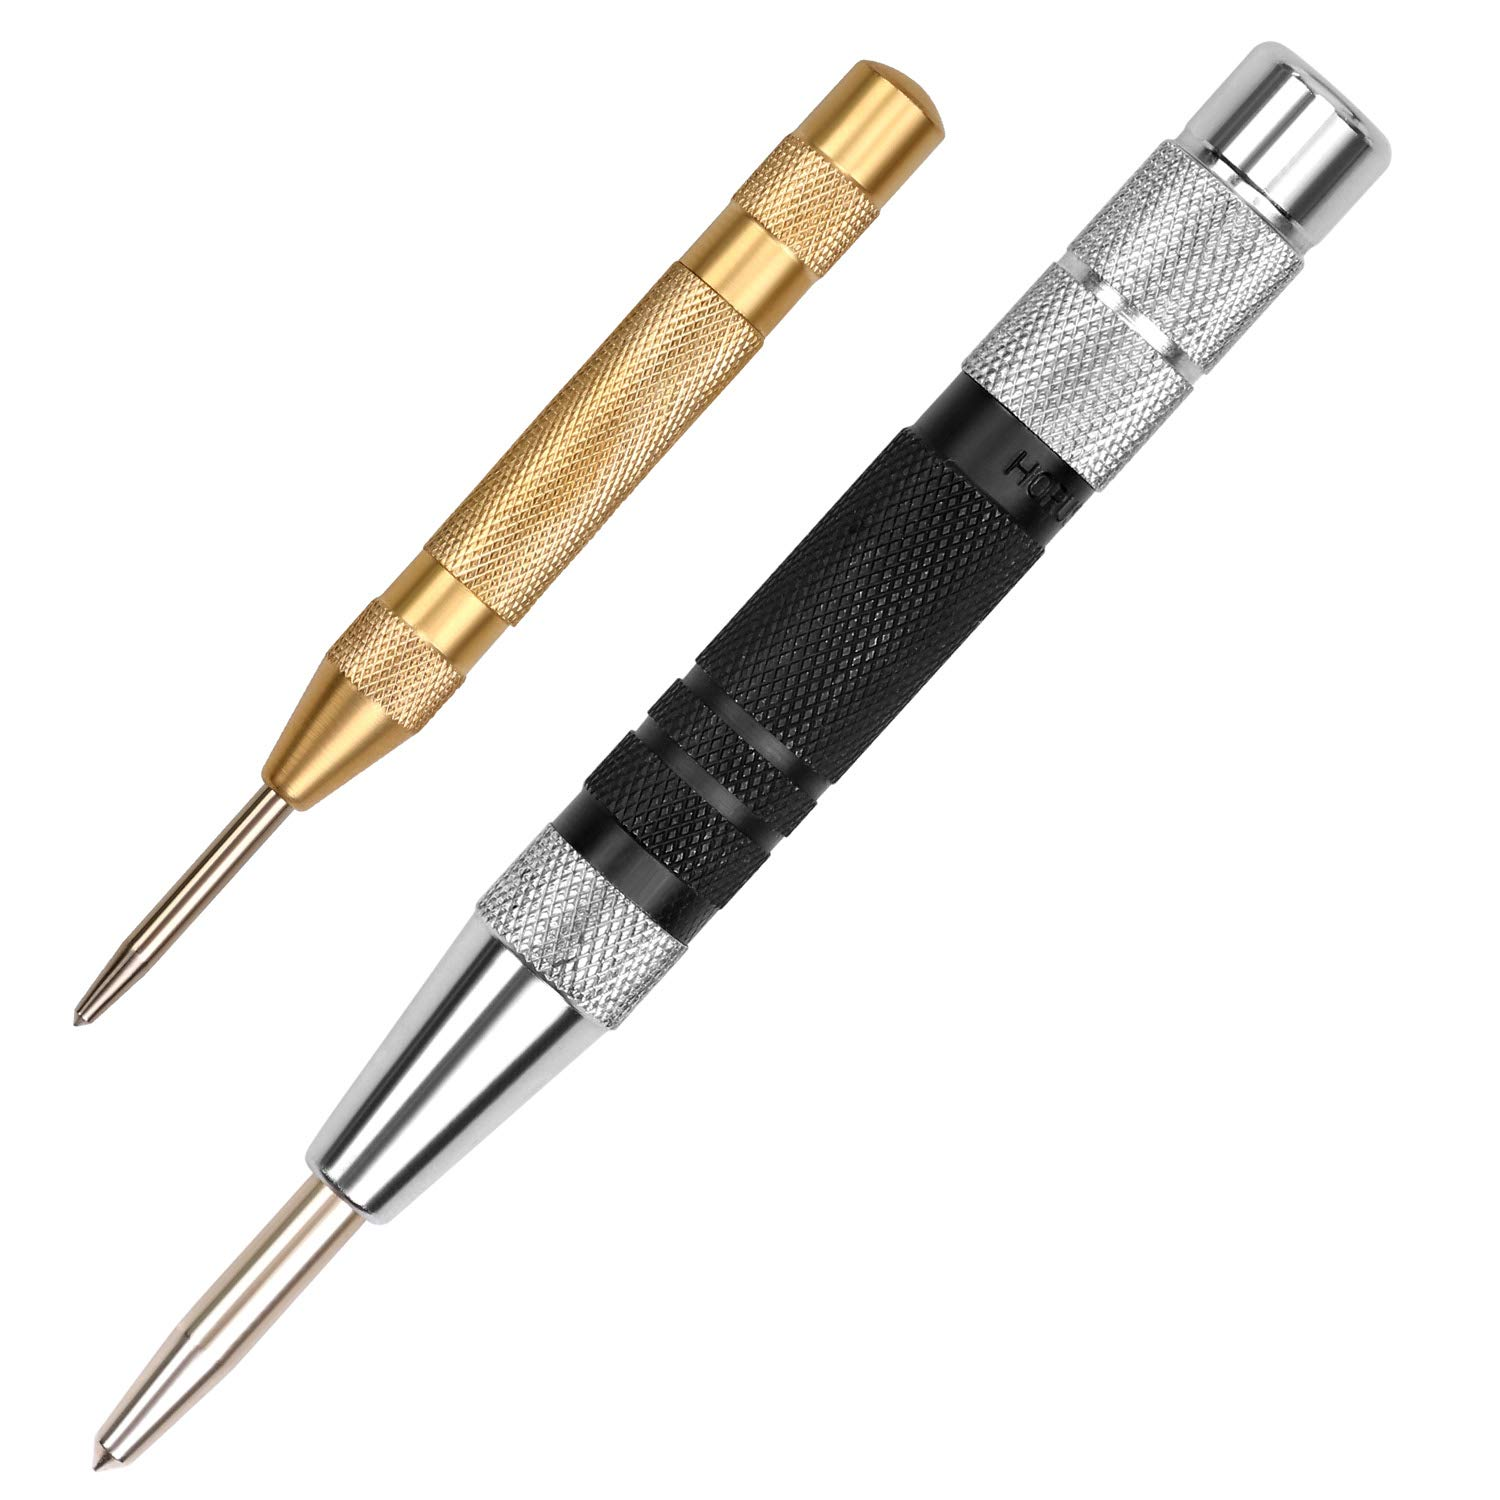 Black Adjustable Spring Loaded Metal Drill Tool 2pcs HORUSDY Super Strong Automatic Centre Punch and General Automatic Center Punch (Yellow)